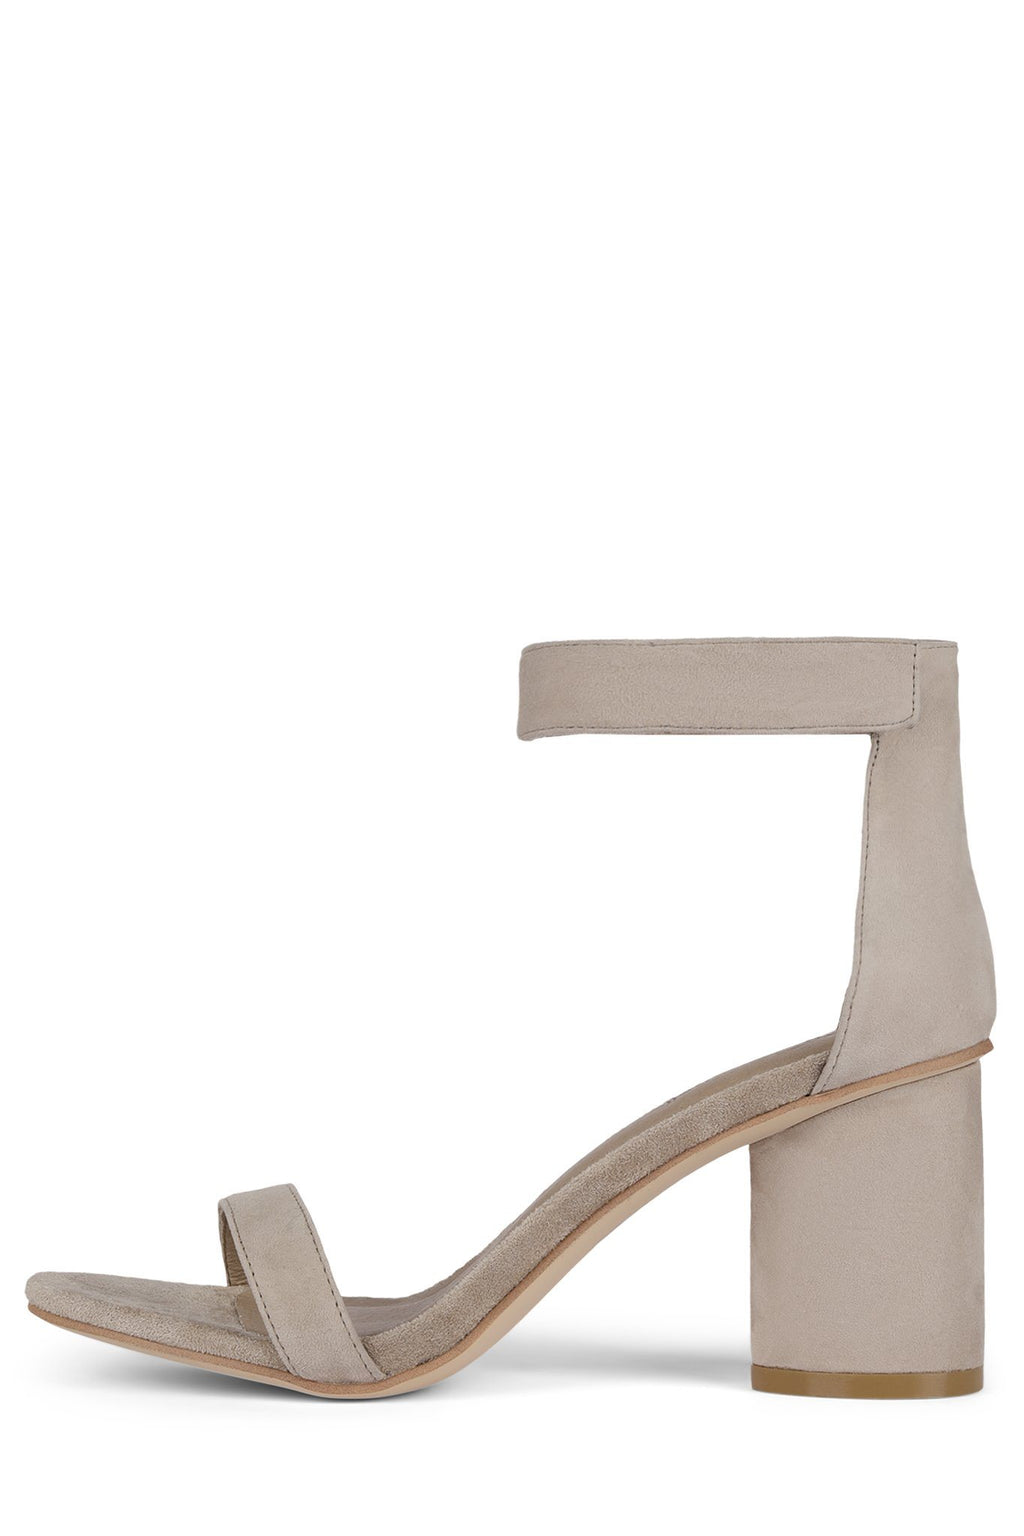 LAURA Heeled Sandal Jeffrey Campbell Taupe Suede 6